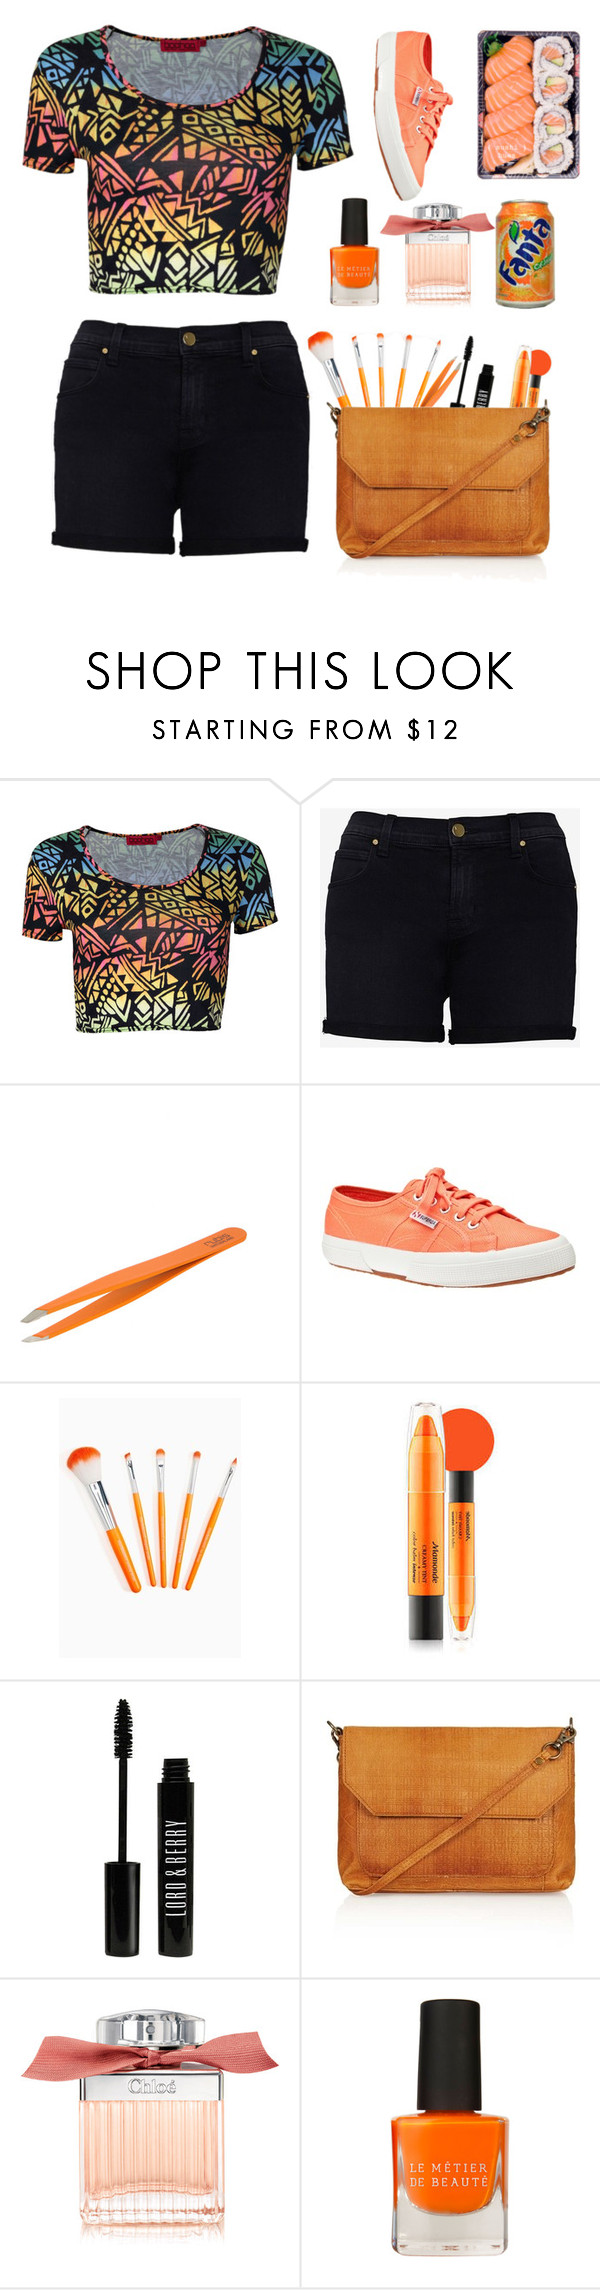 """Orange #99"" by miriloto2 ❤ liked on Polyvore featuring beauty, Boohoo, J Brand, Rubis, Superga, Mamonde, Lord & Berry, Topshop, Chloé and Le Métier de Beauté"